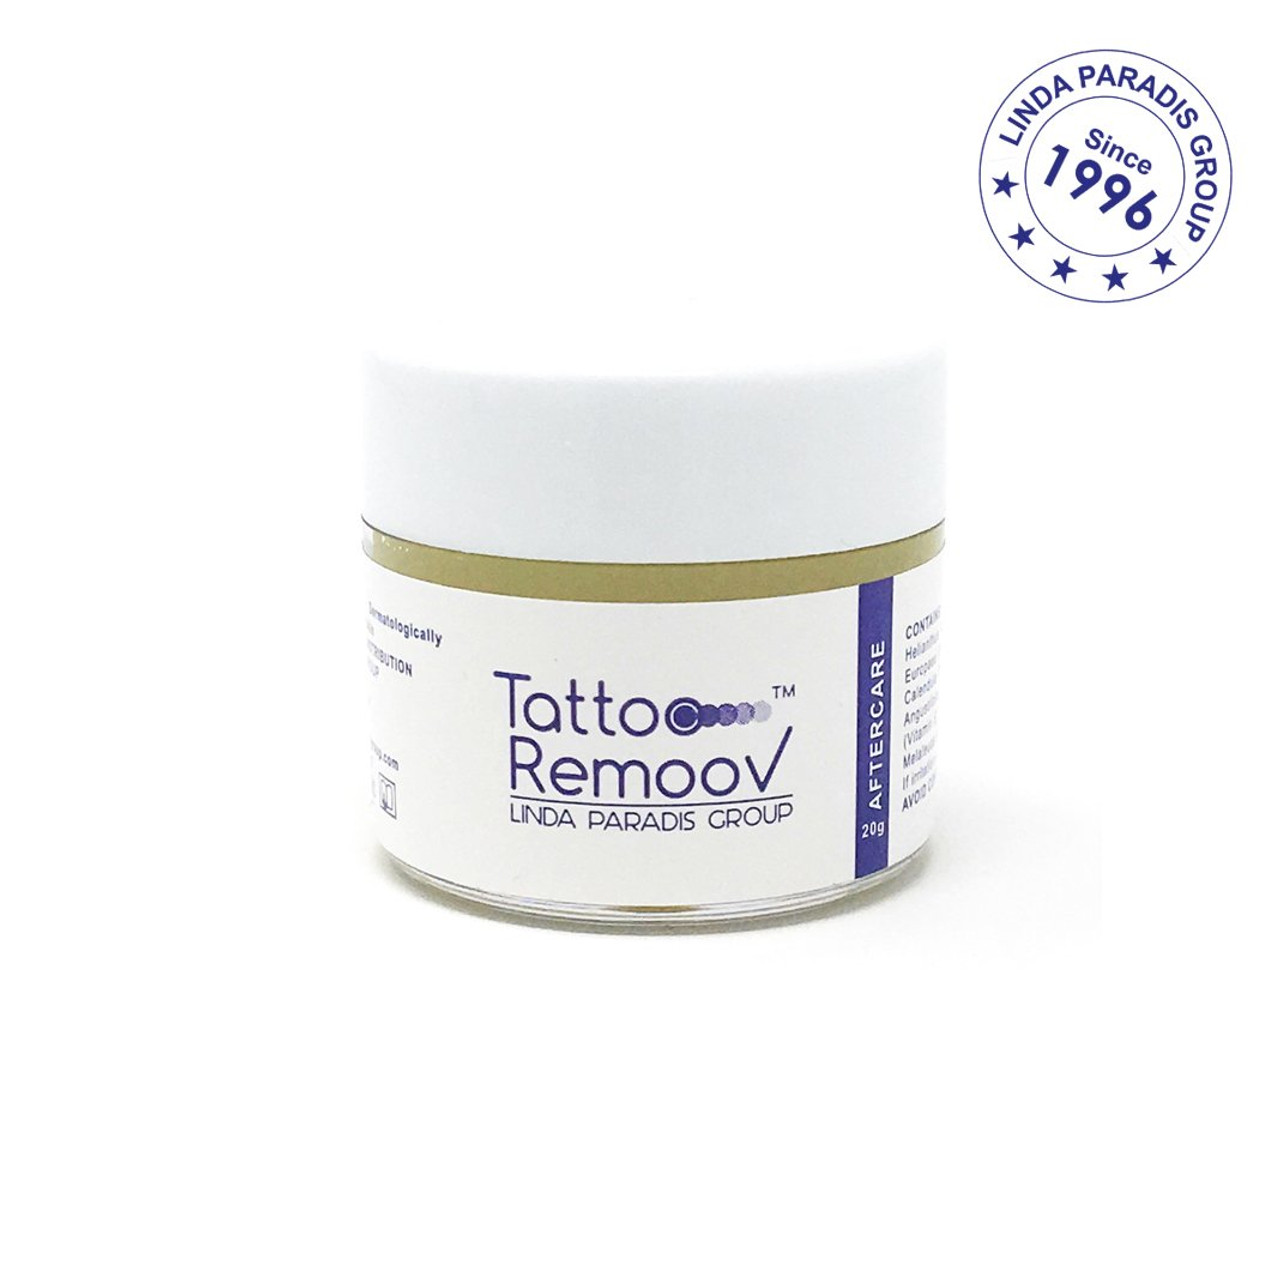 Aftercare 20g - Tattoo Remoov